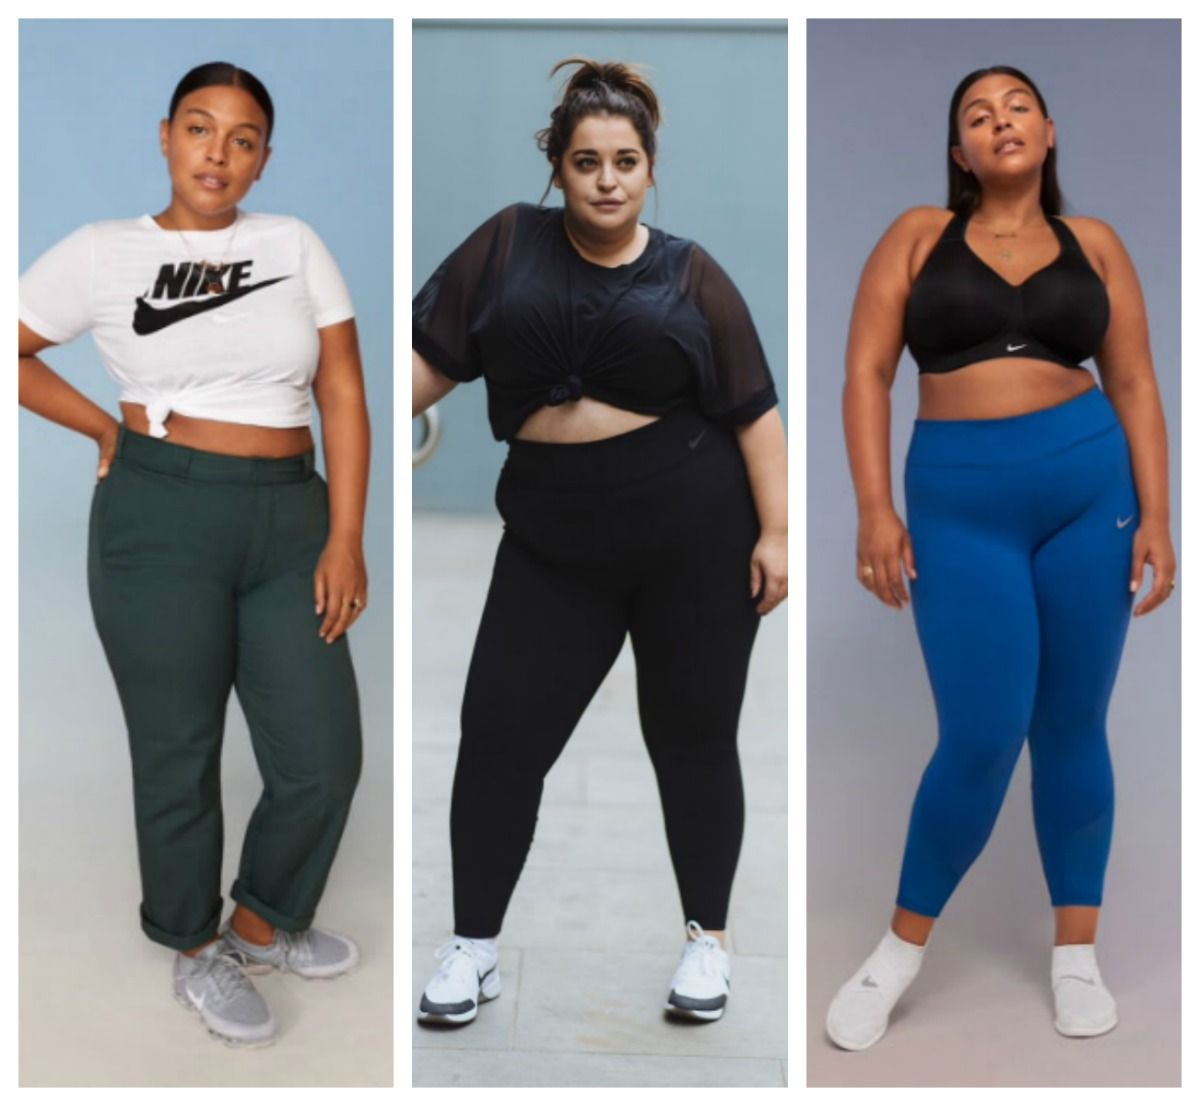 6b048dc6794 Nike Just Launched Their First Plus Size Activewear Campaign